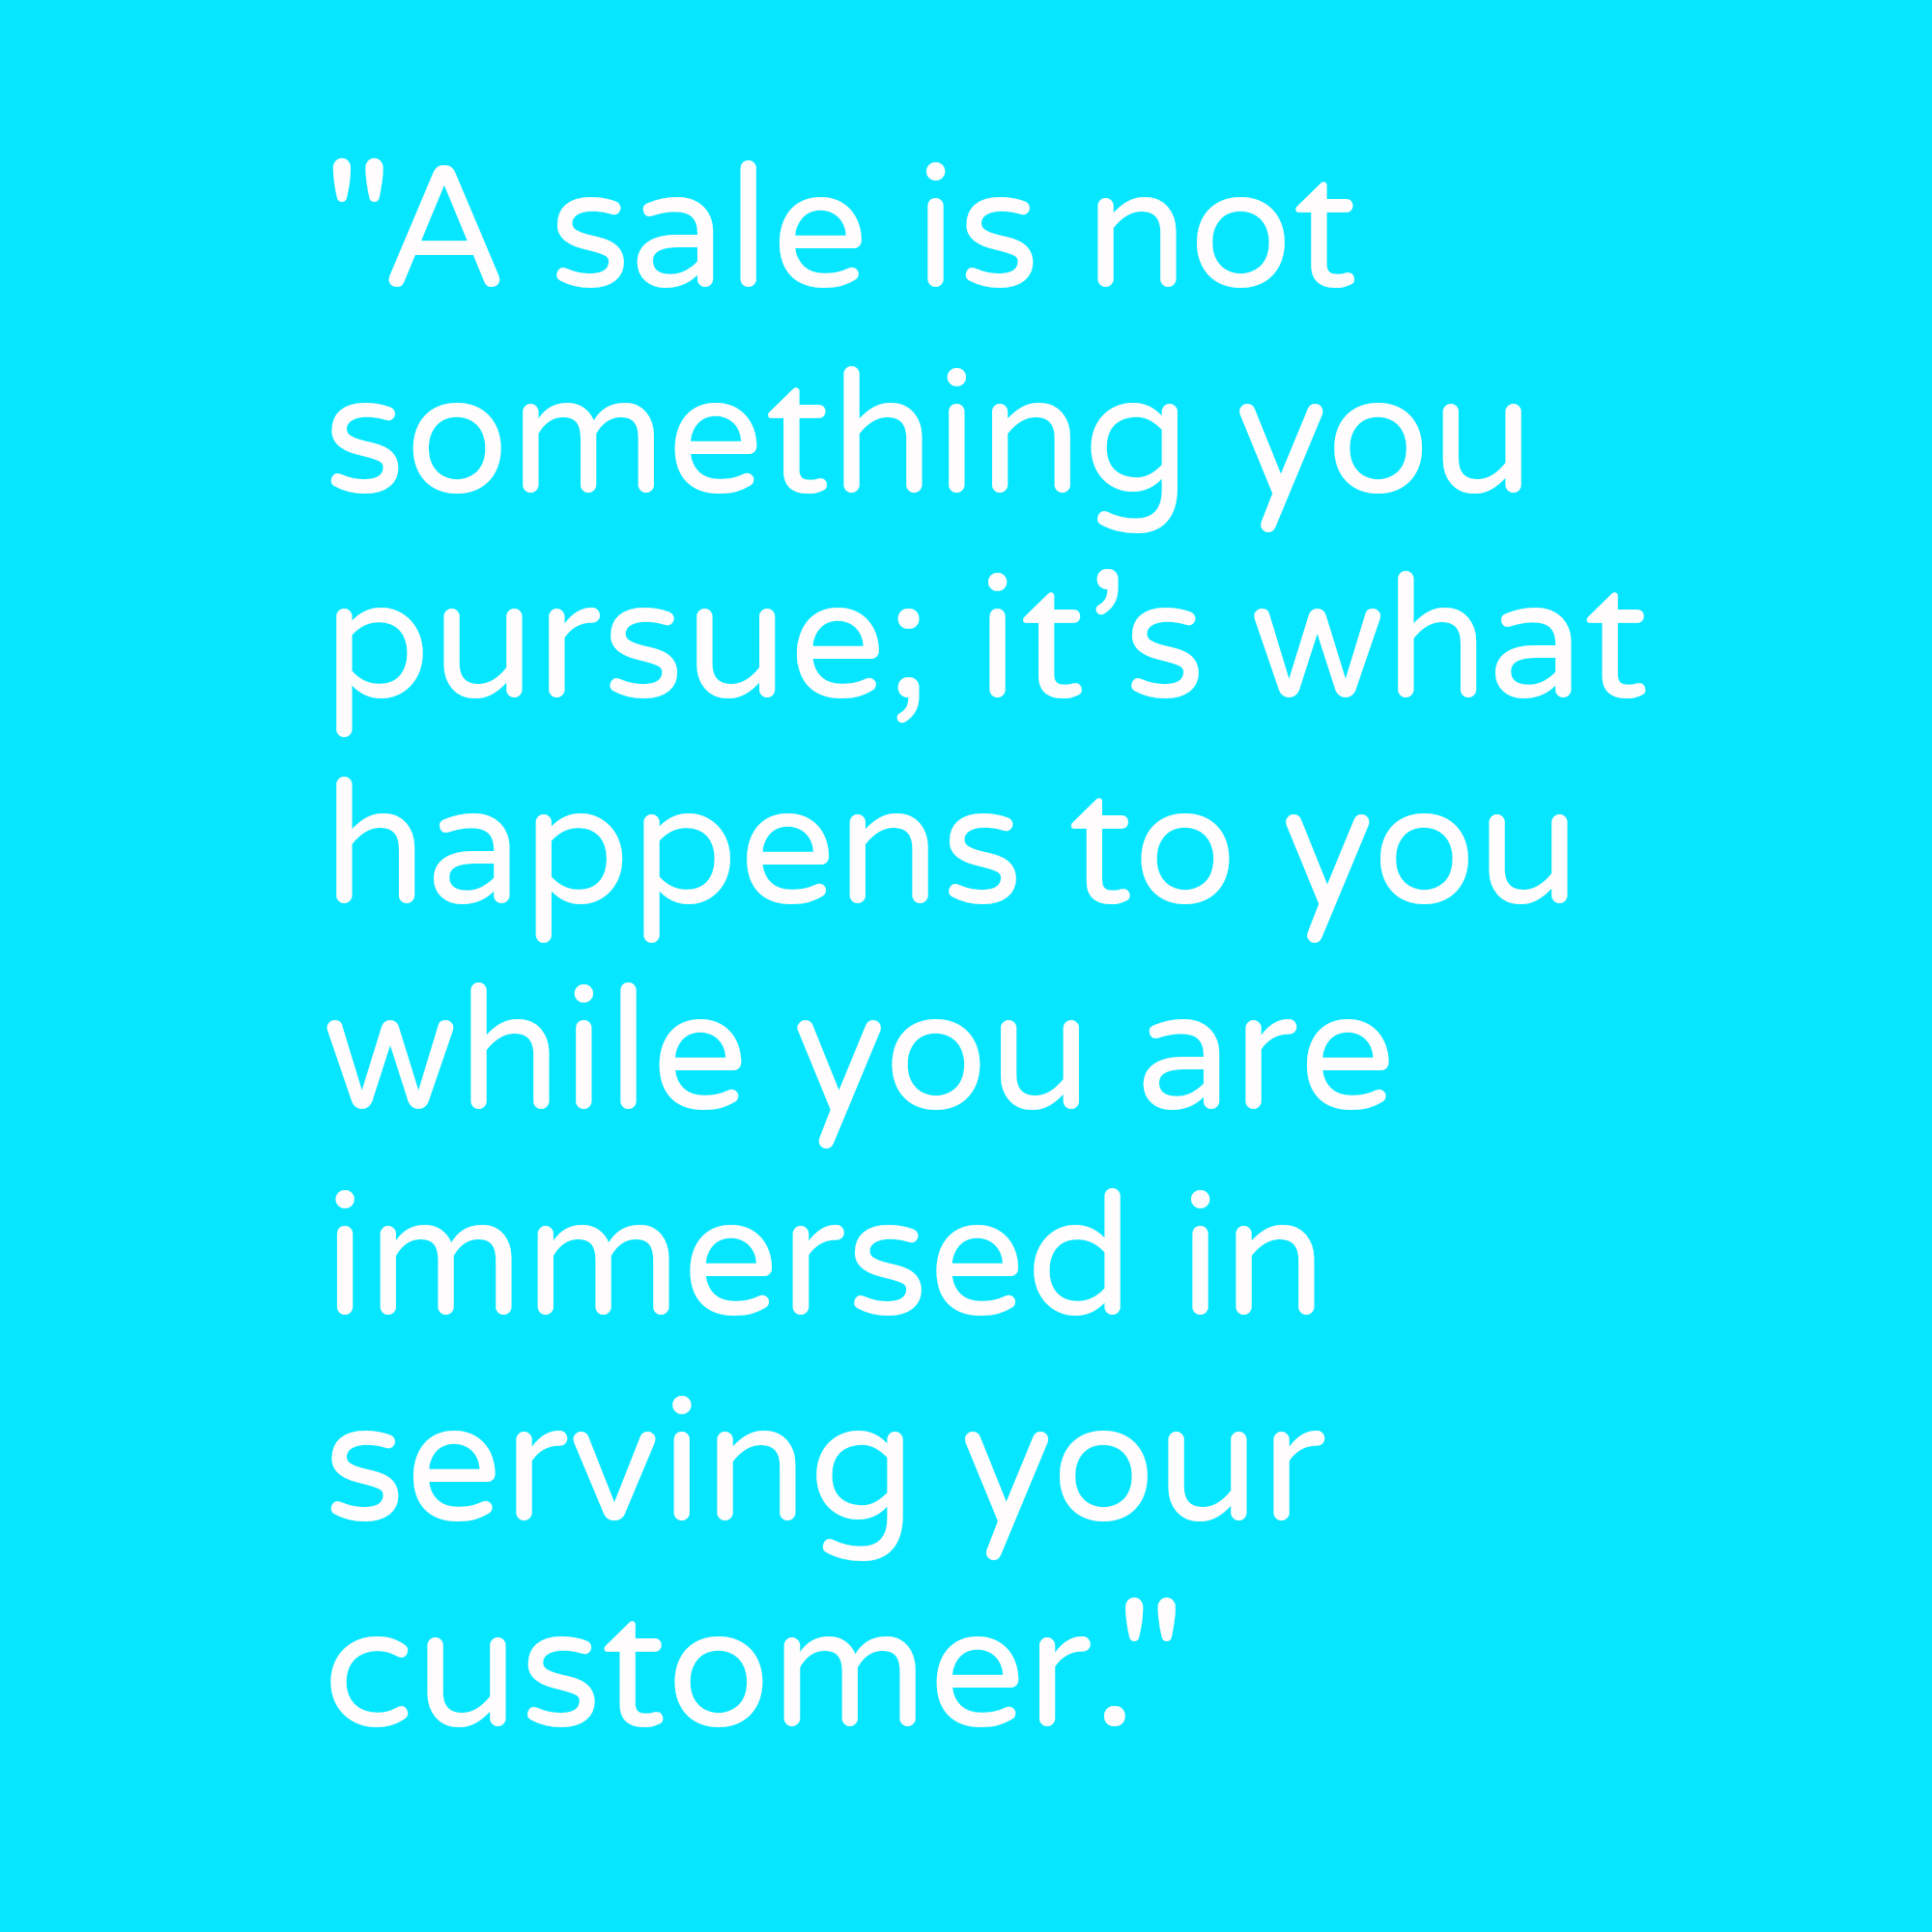 Motivational Sales Quotes Pleasing How Do You Run Your Business #motivational #sales #quotes  Let's